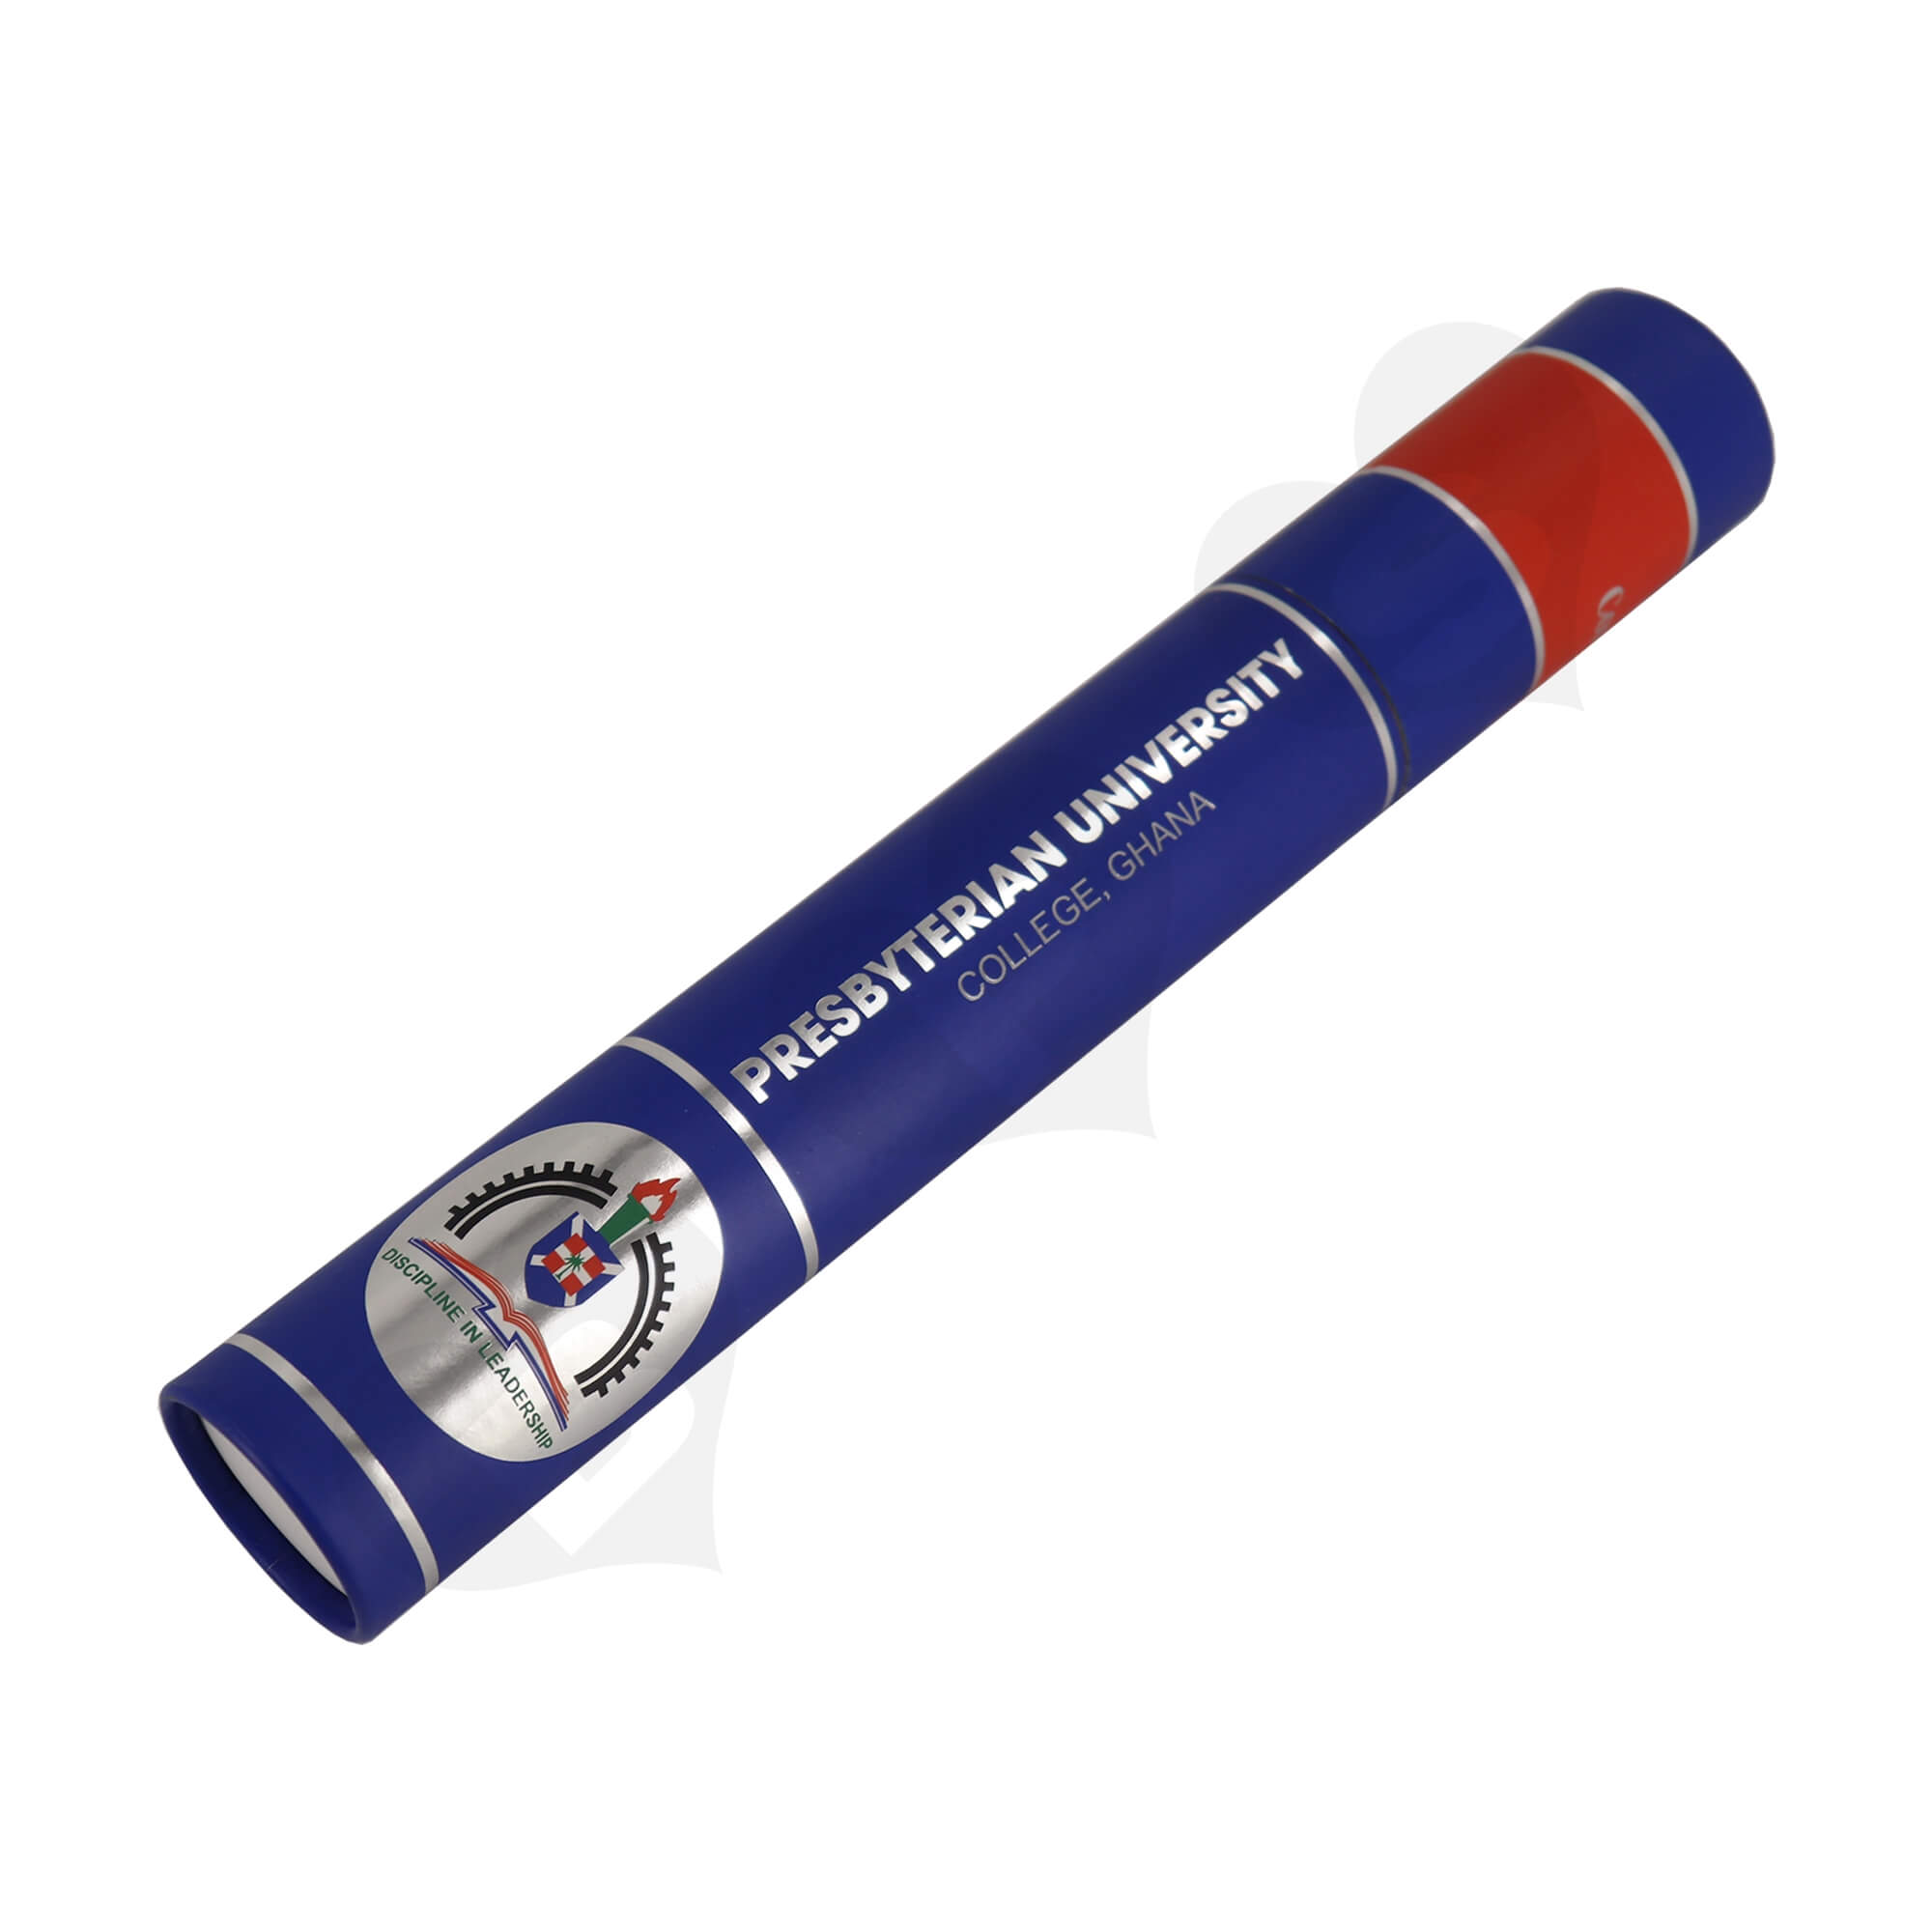 Big Size Cardboard Tube For Packing University Congratulations Gifts Side View Two